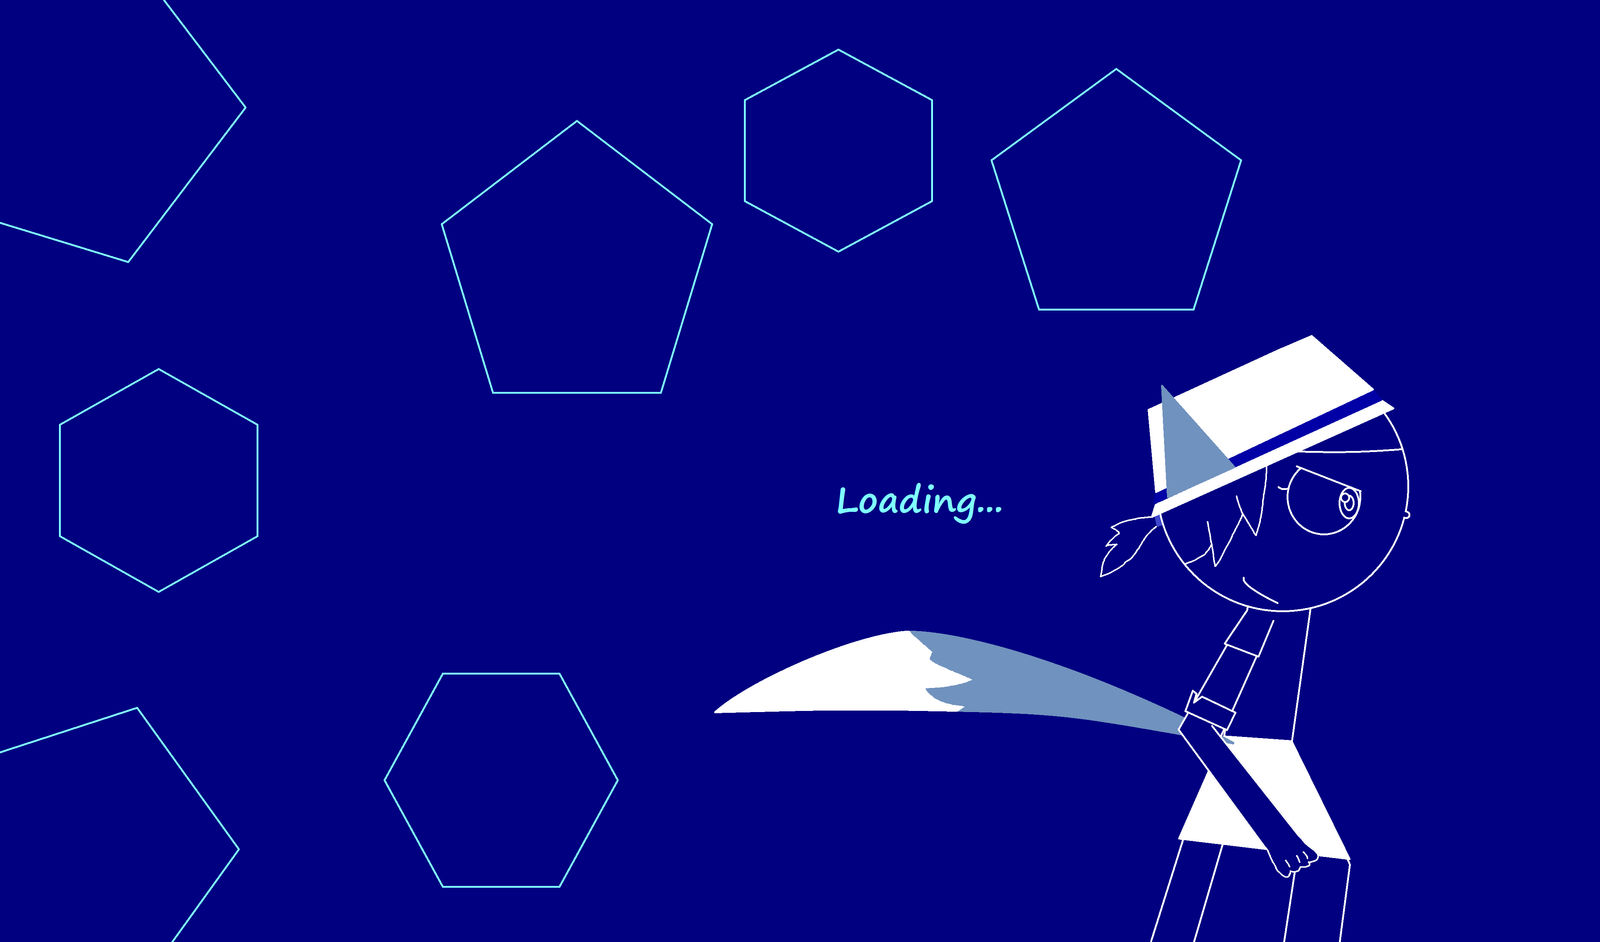 Scout The Fox The Video Game Loading Screen By Icefir On